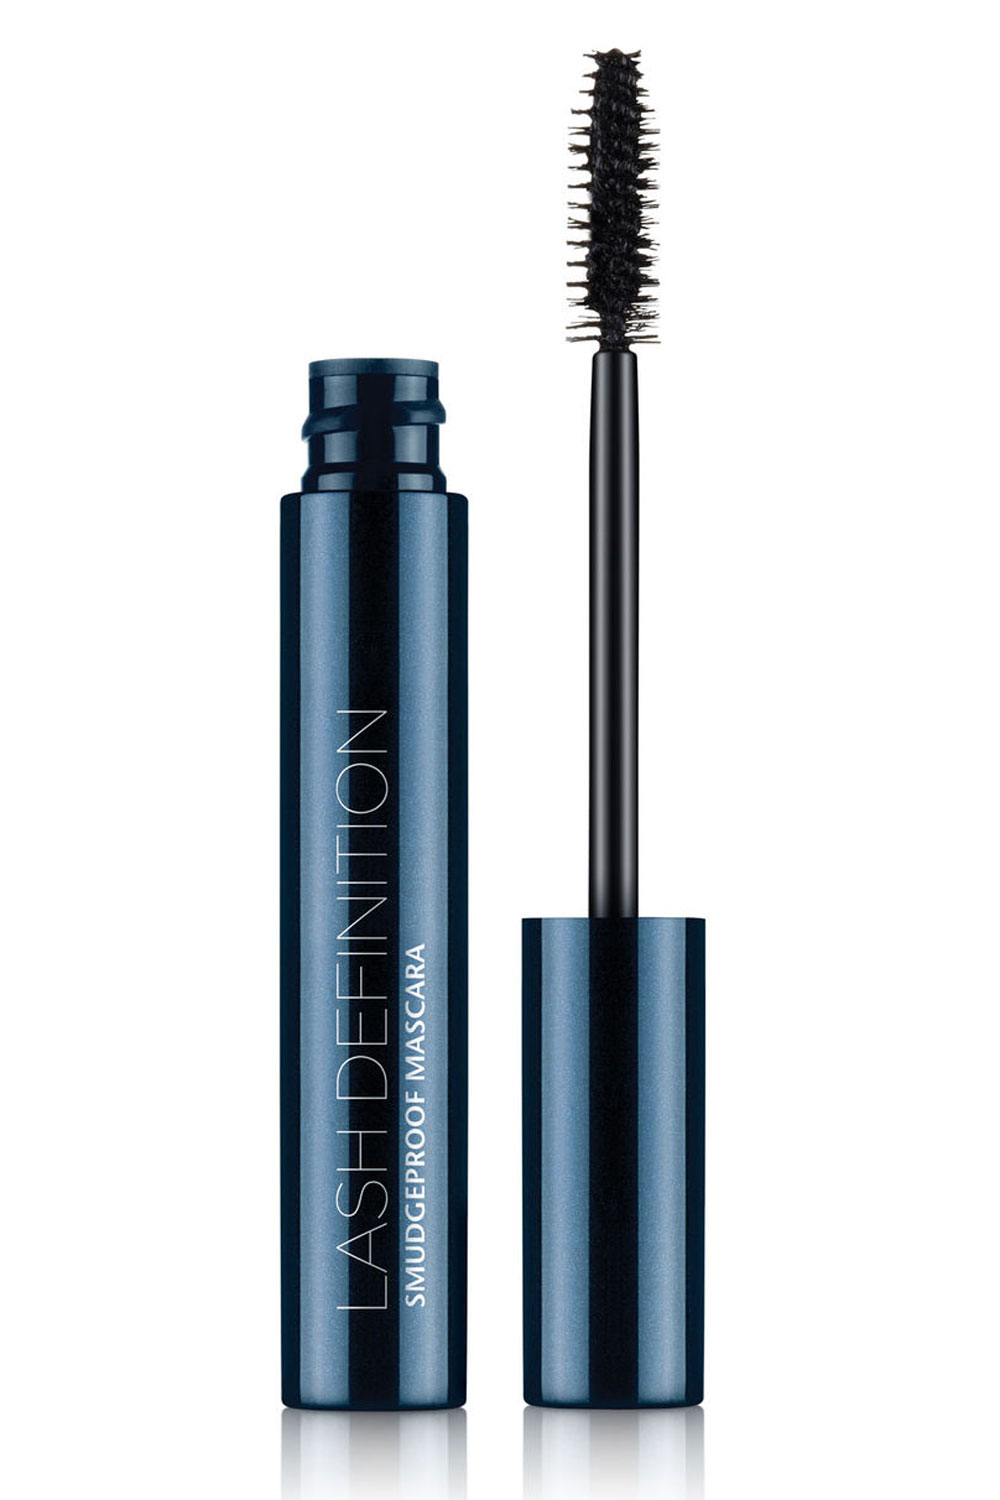 Liz Earle Lash Definition Smudgeproof Mascara, £14.50